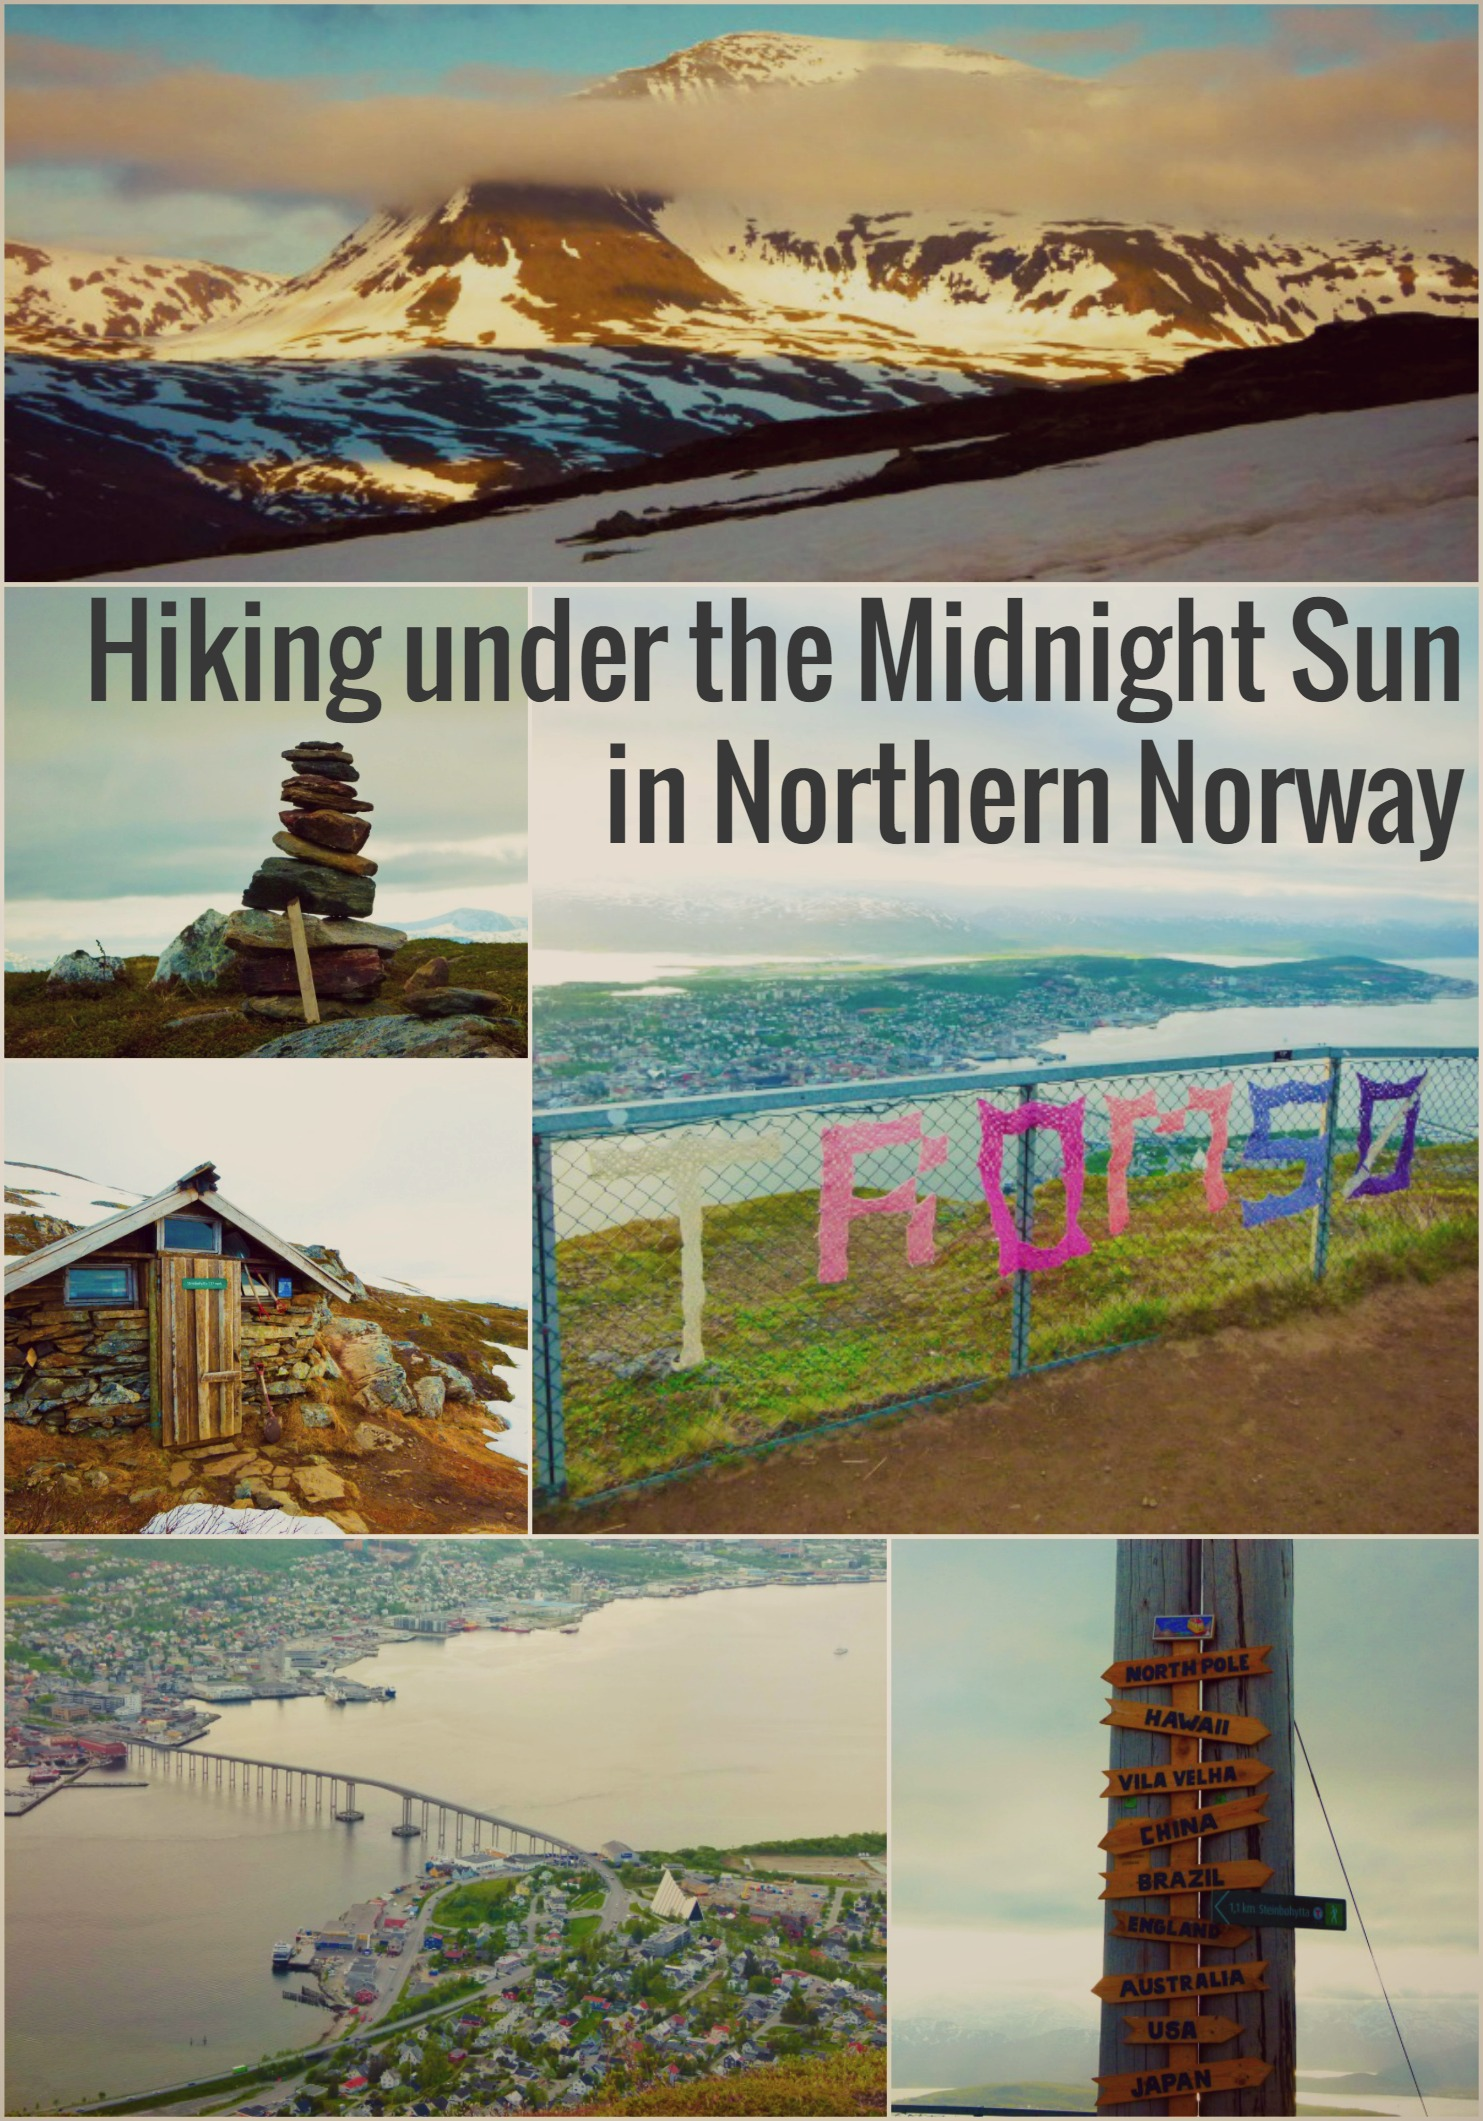 Hiking under the Midnight Sun - the dream of many visiting Tromso and Northern Norway. I'm taking you on a tour up Mountain Fjellheisen in Tromso one sunny evening.